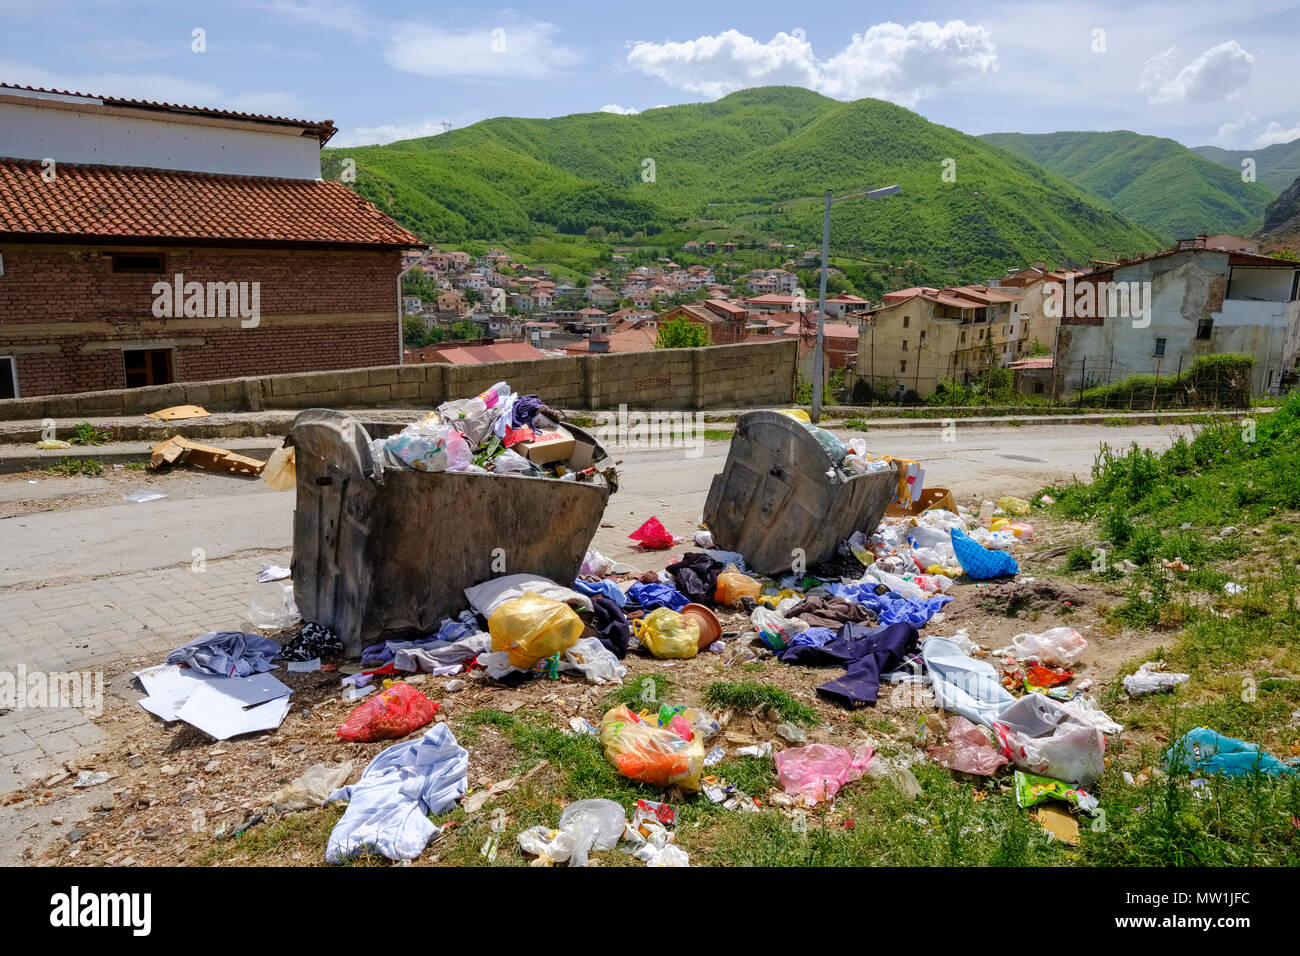 Garbage and full garbage containers on the roadside, Pogradec on Lake Ohrid, Korca region, Albania - Stock Image